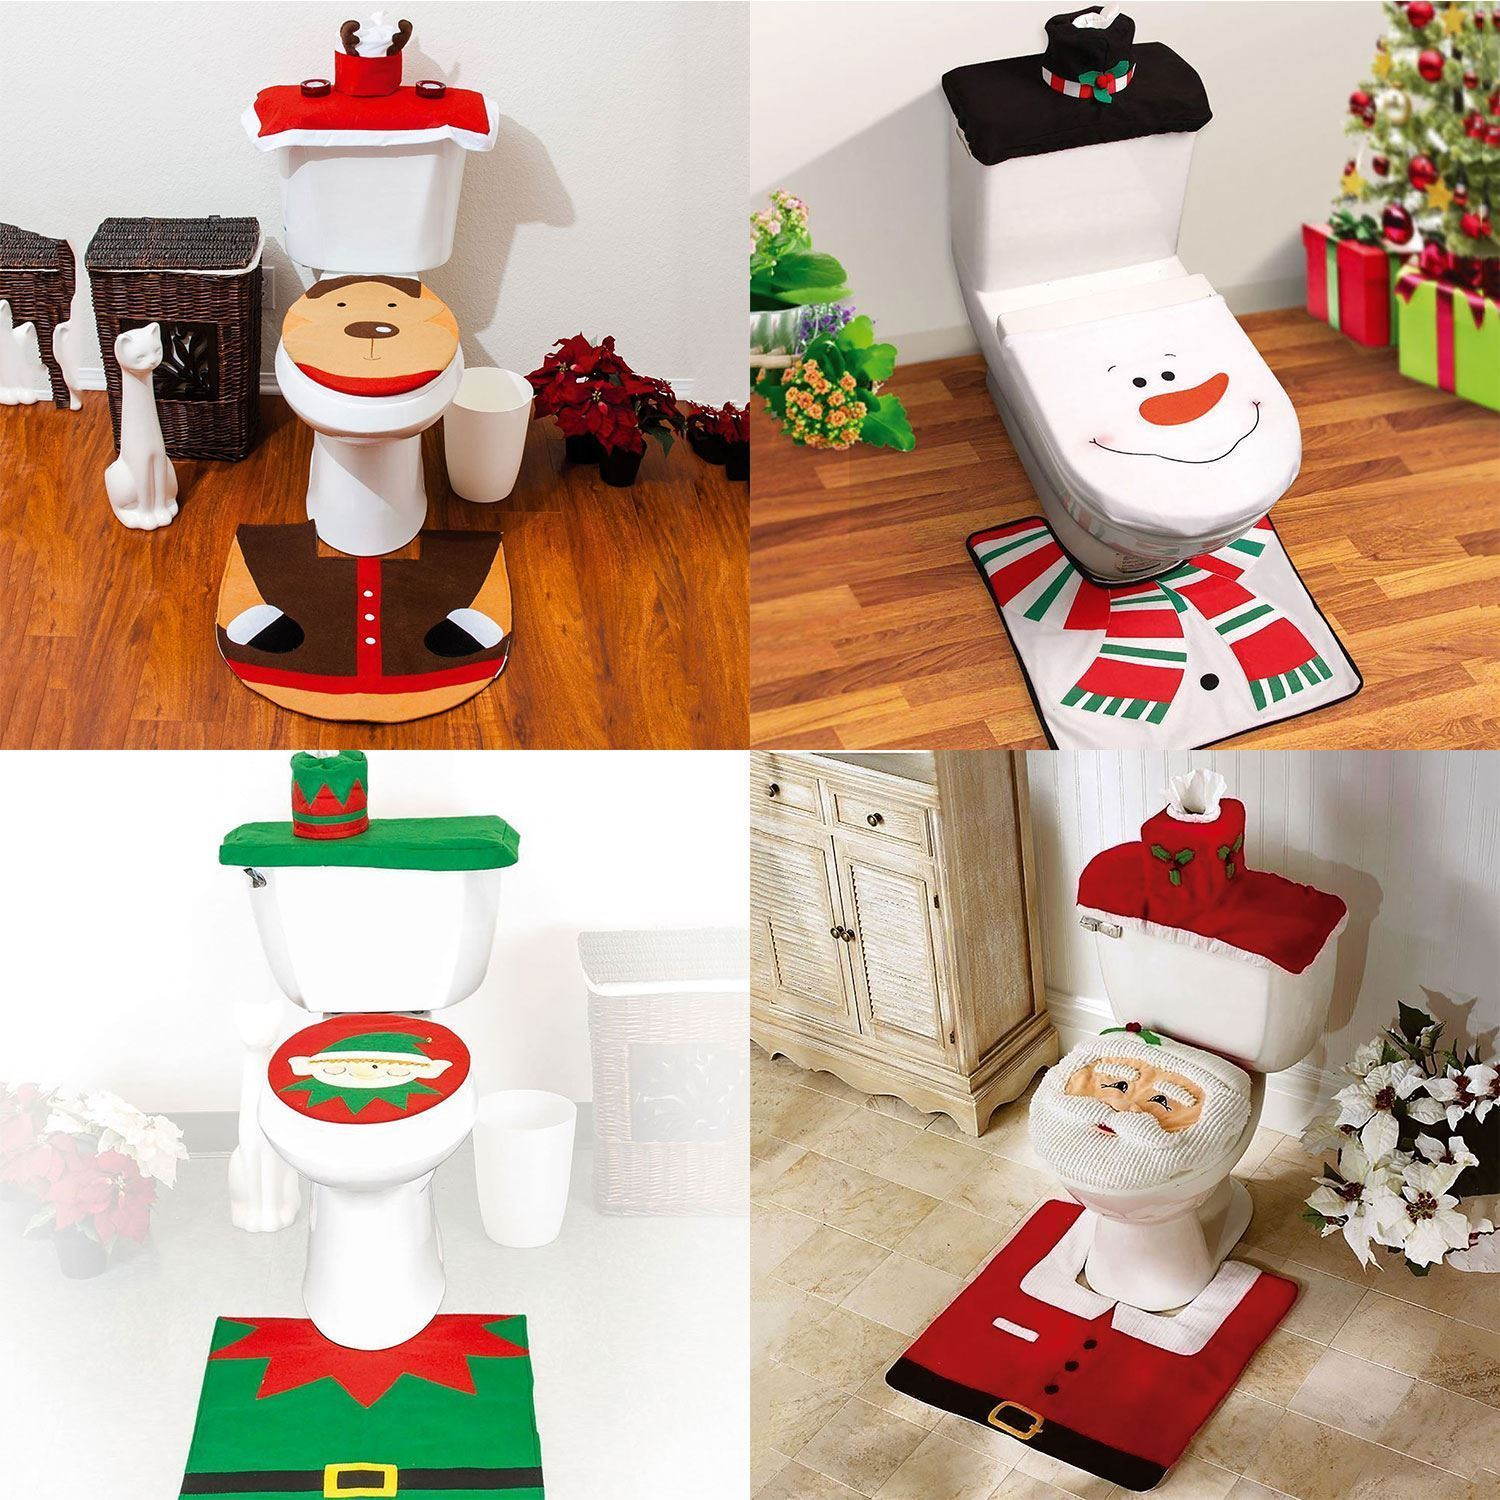 festive santa elf snowman reindeer toilet seat cover bathroom set